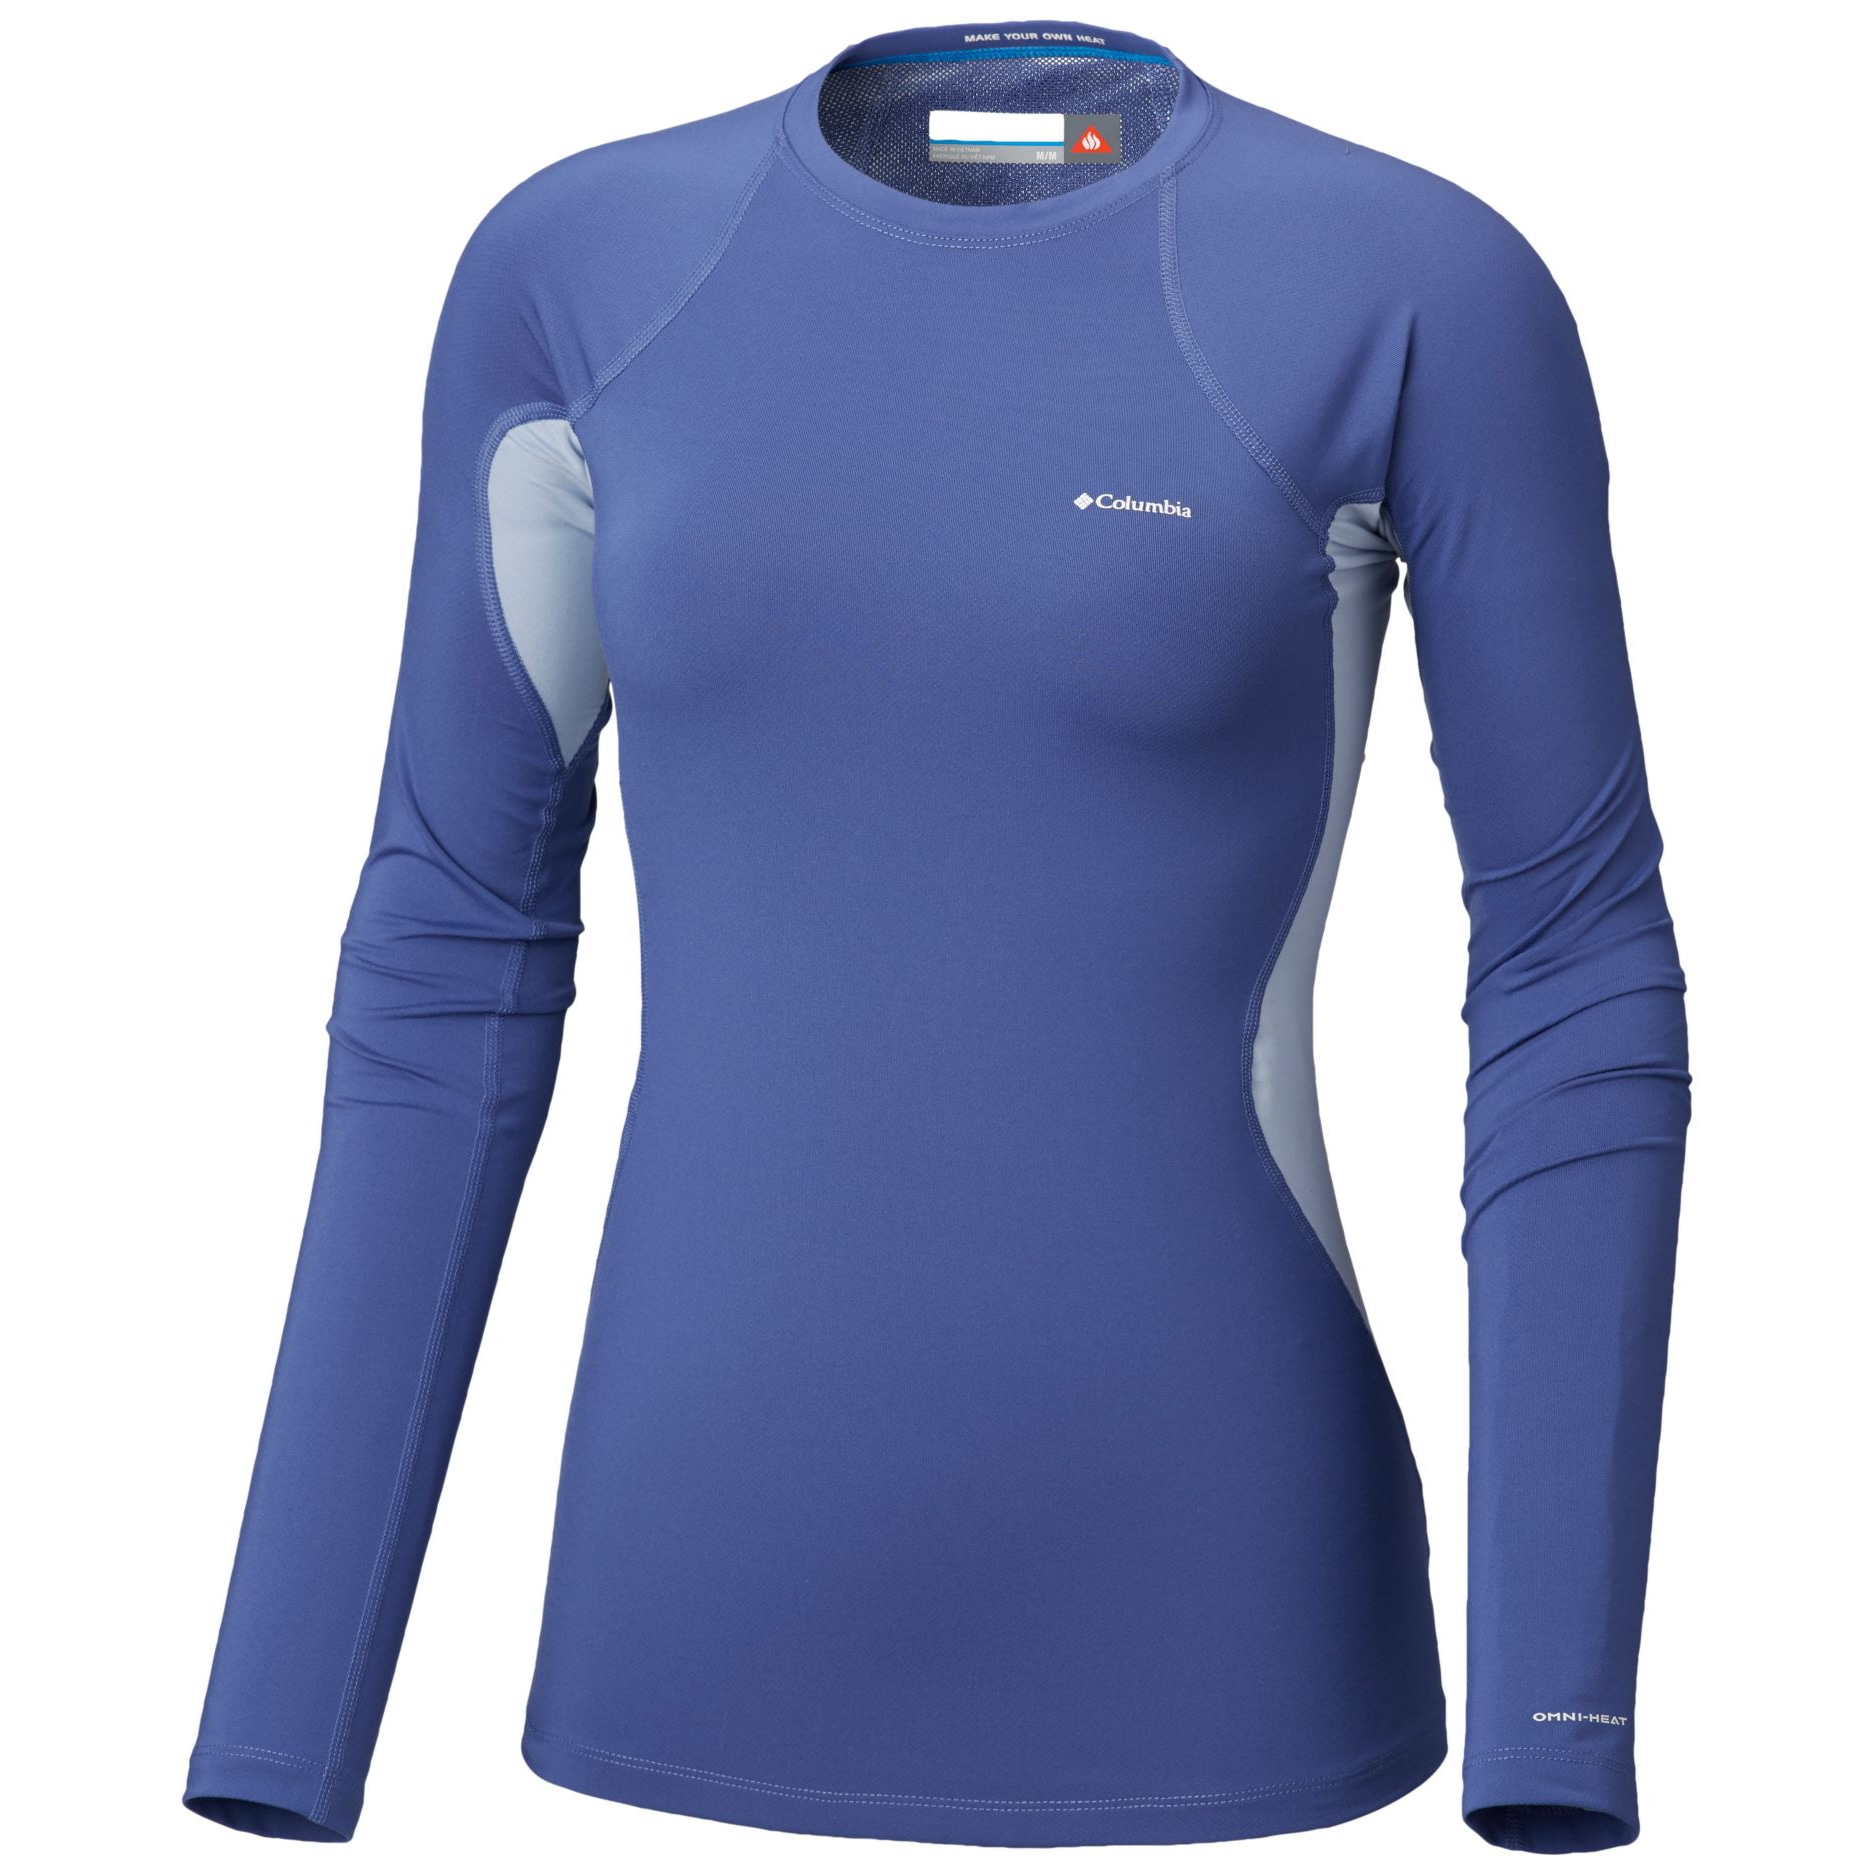 Midweight Stretch Top Long Sleeve - Women's